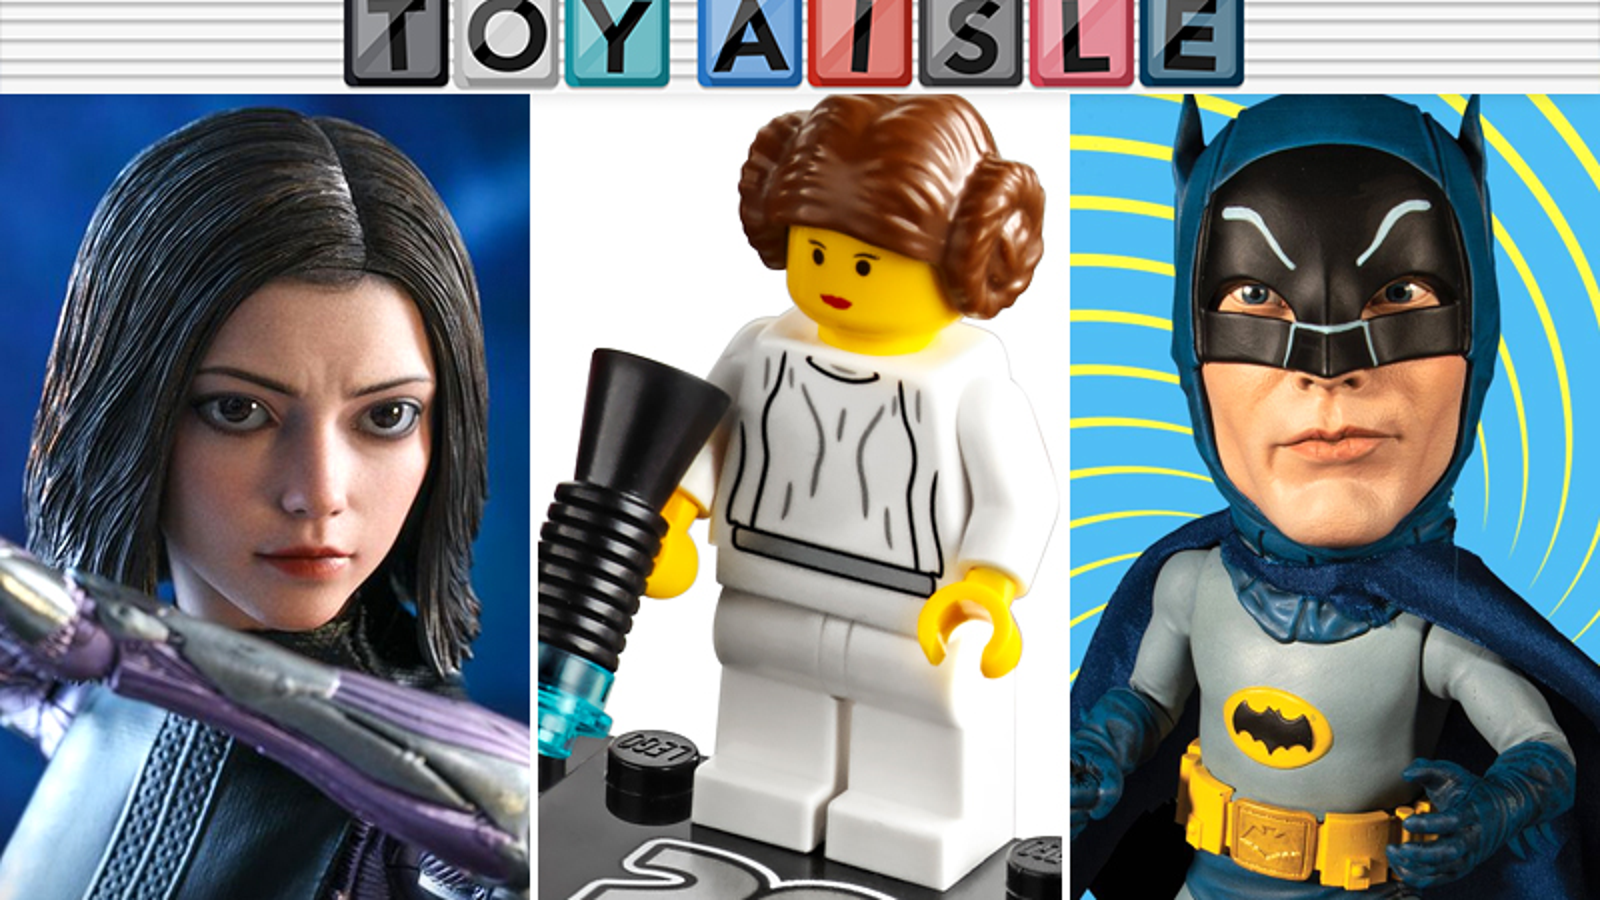 Lego Star Wars 20th Anniversary And More Cool Toys Of The Week